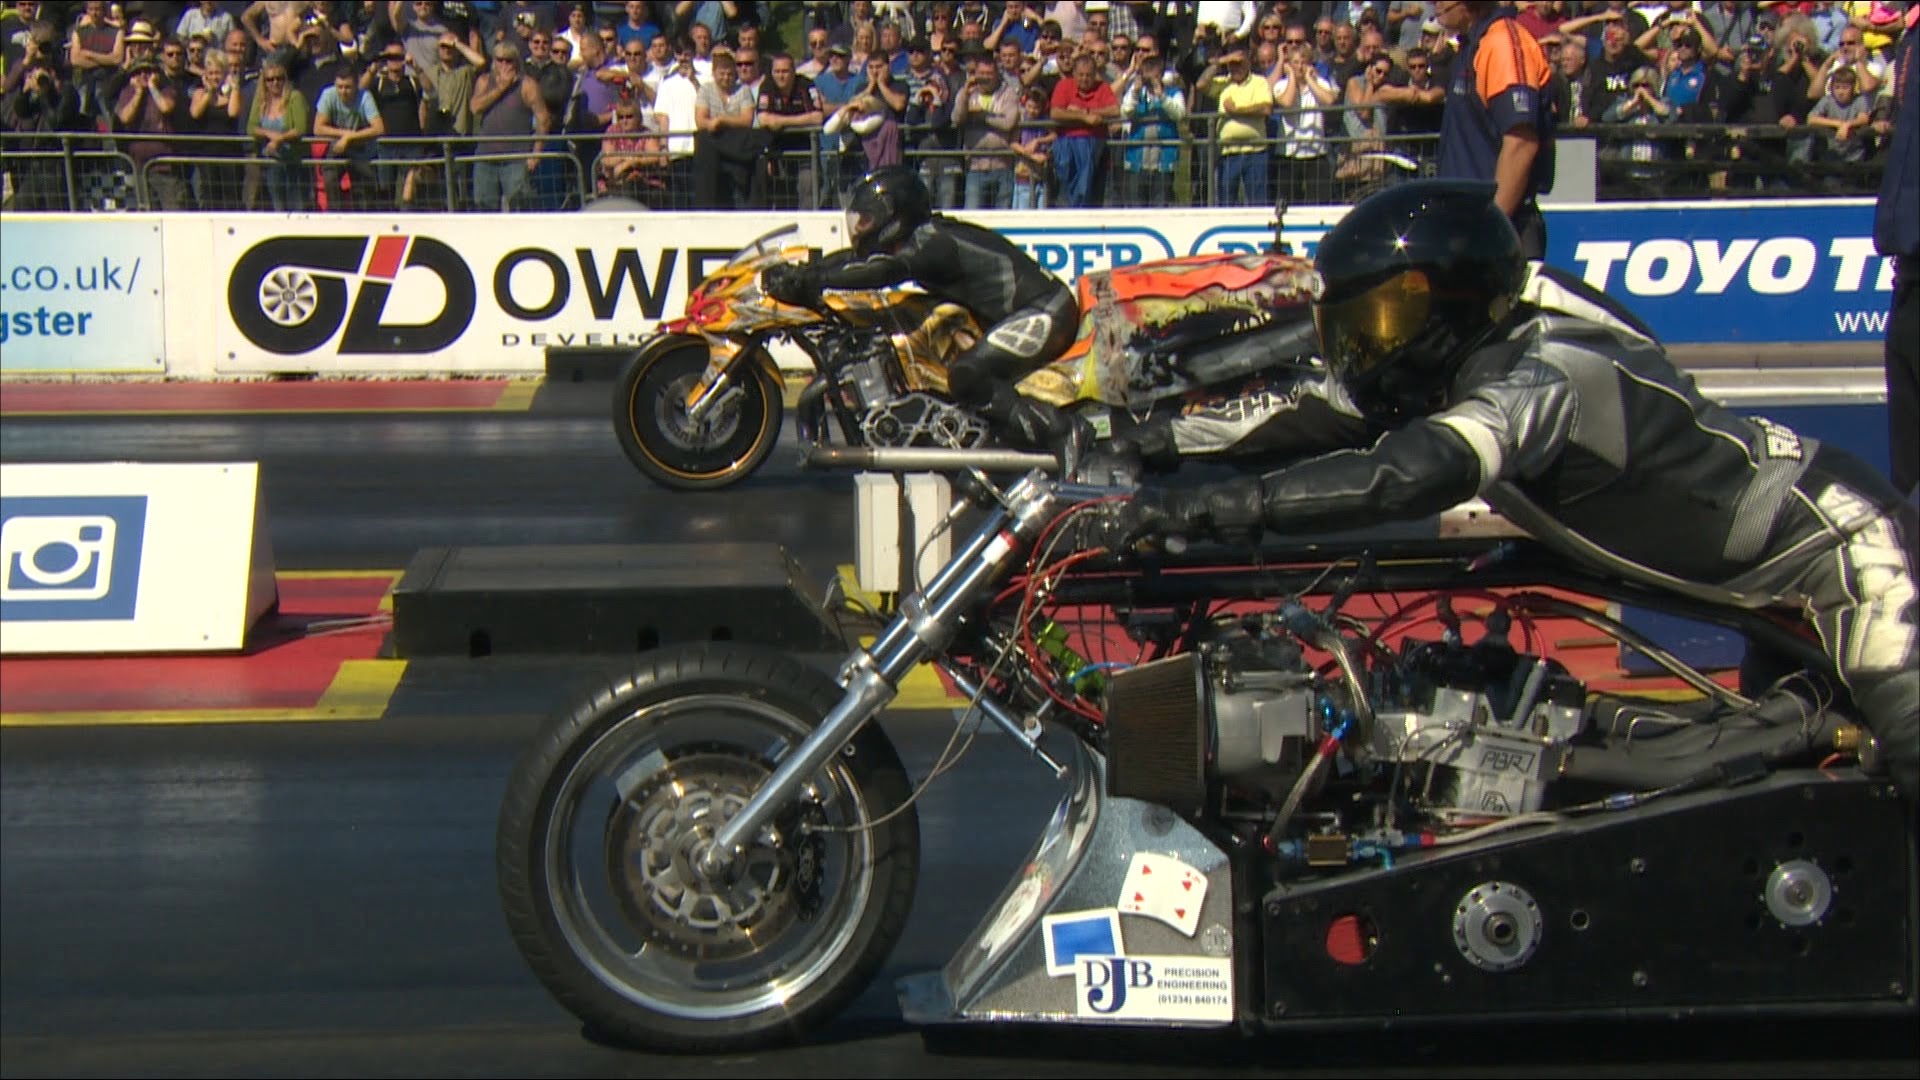 Top Fuel Drag Bike rider Filippos Papafilippou collides at almost 200mph with .